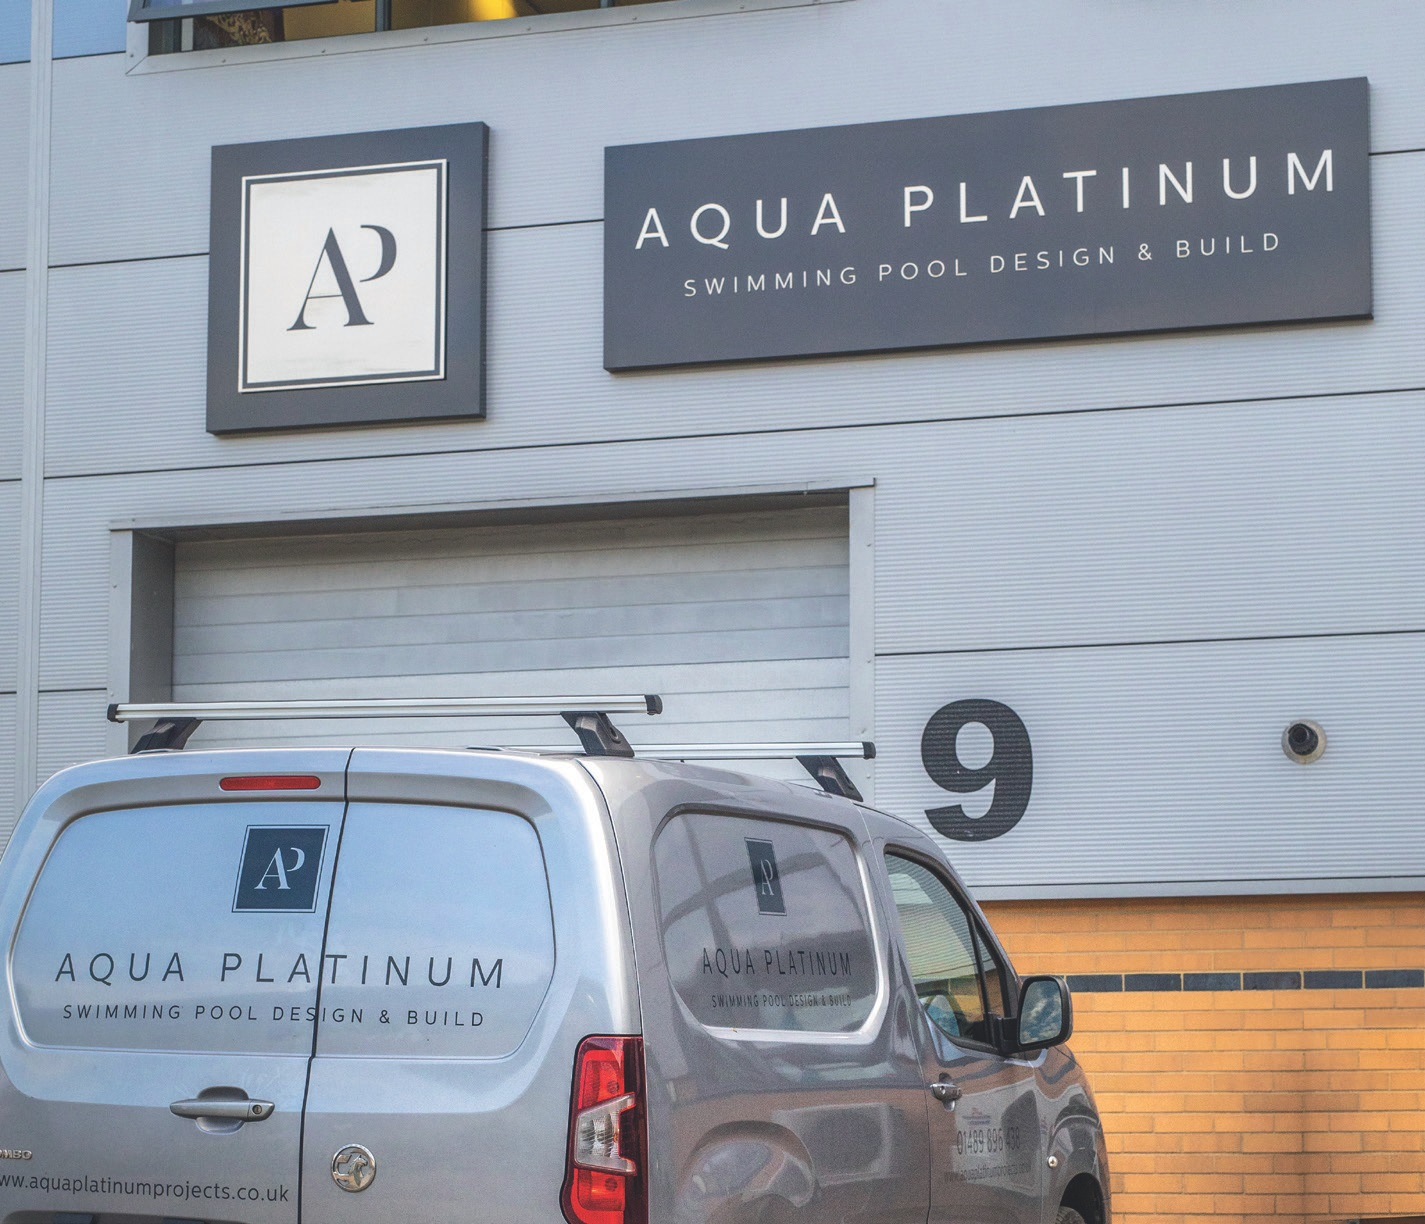 AQUA PLATINUM are going into their biggest year to date